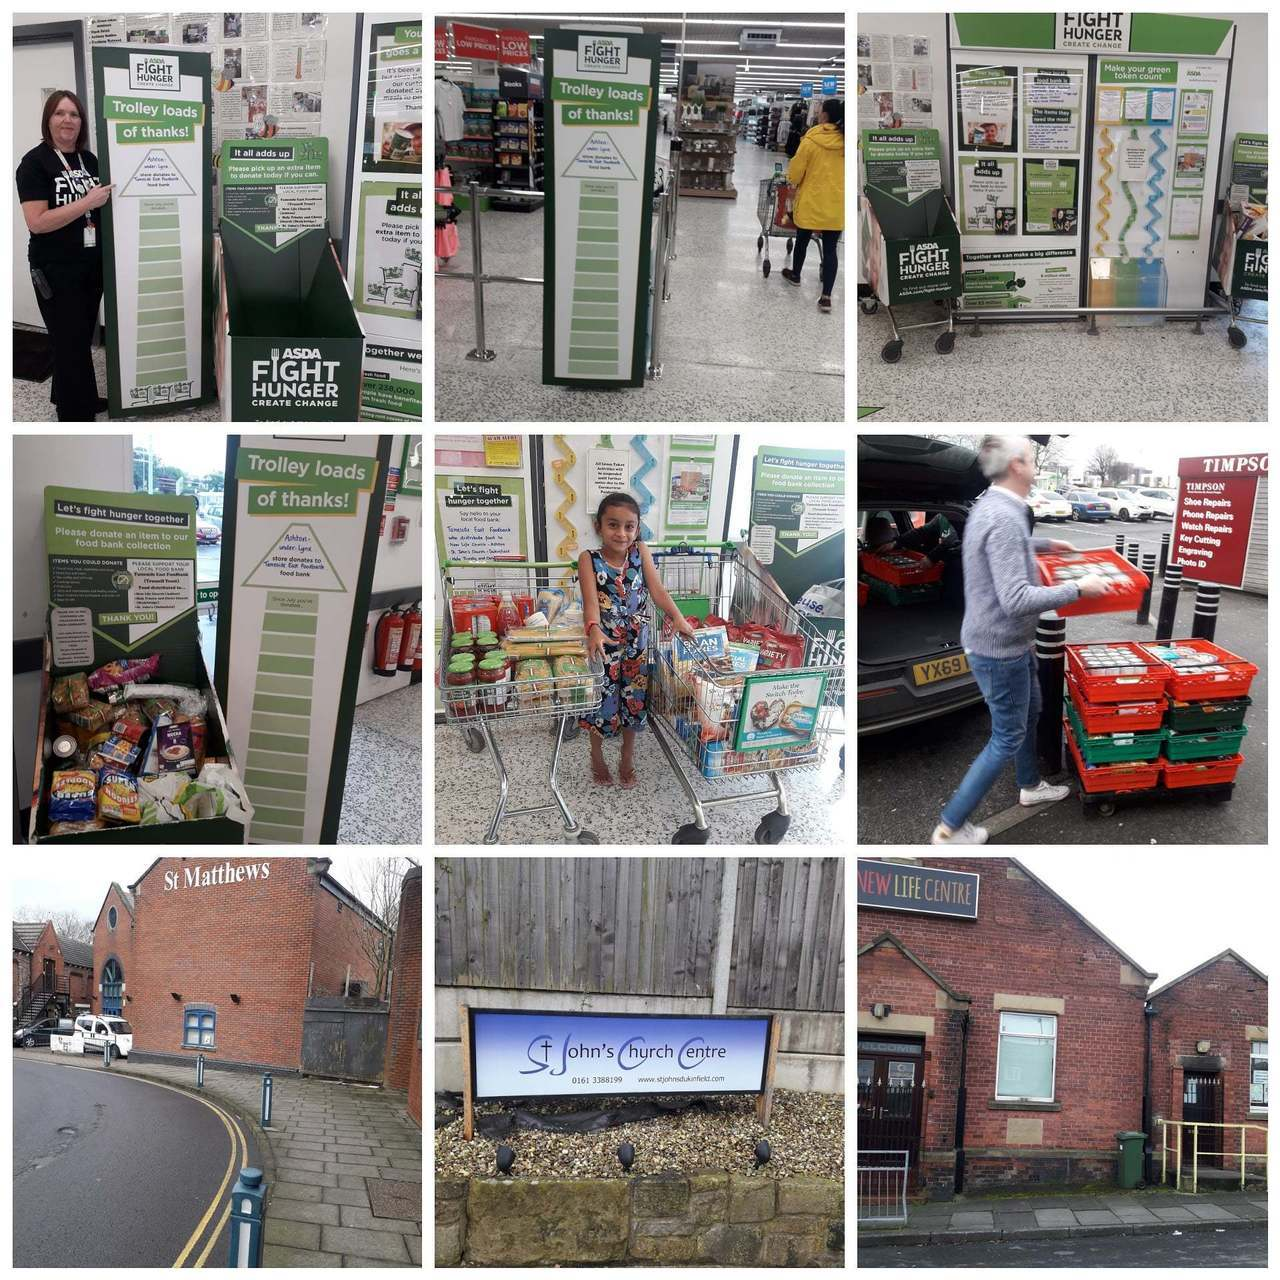 Supporting our Fight Hunger Create Change initiative | Asda Ashton